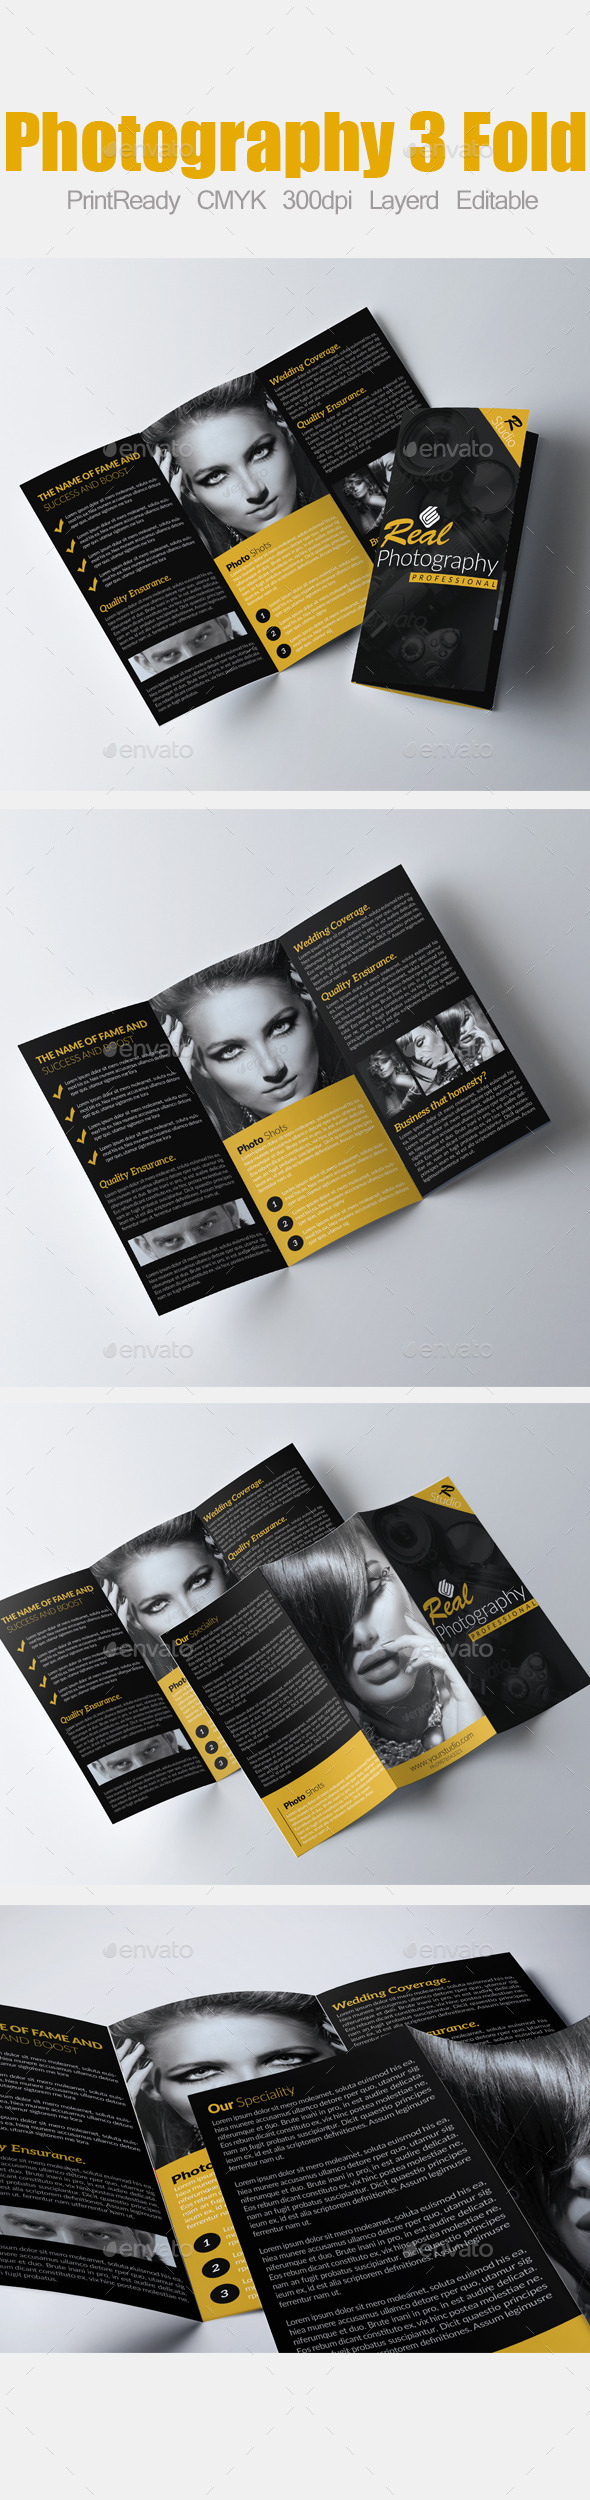 Tri Fold Fashion and Photography Brochure - Corporate Brochures